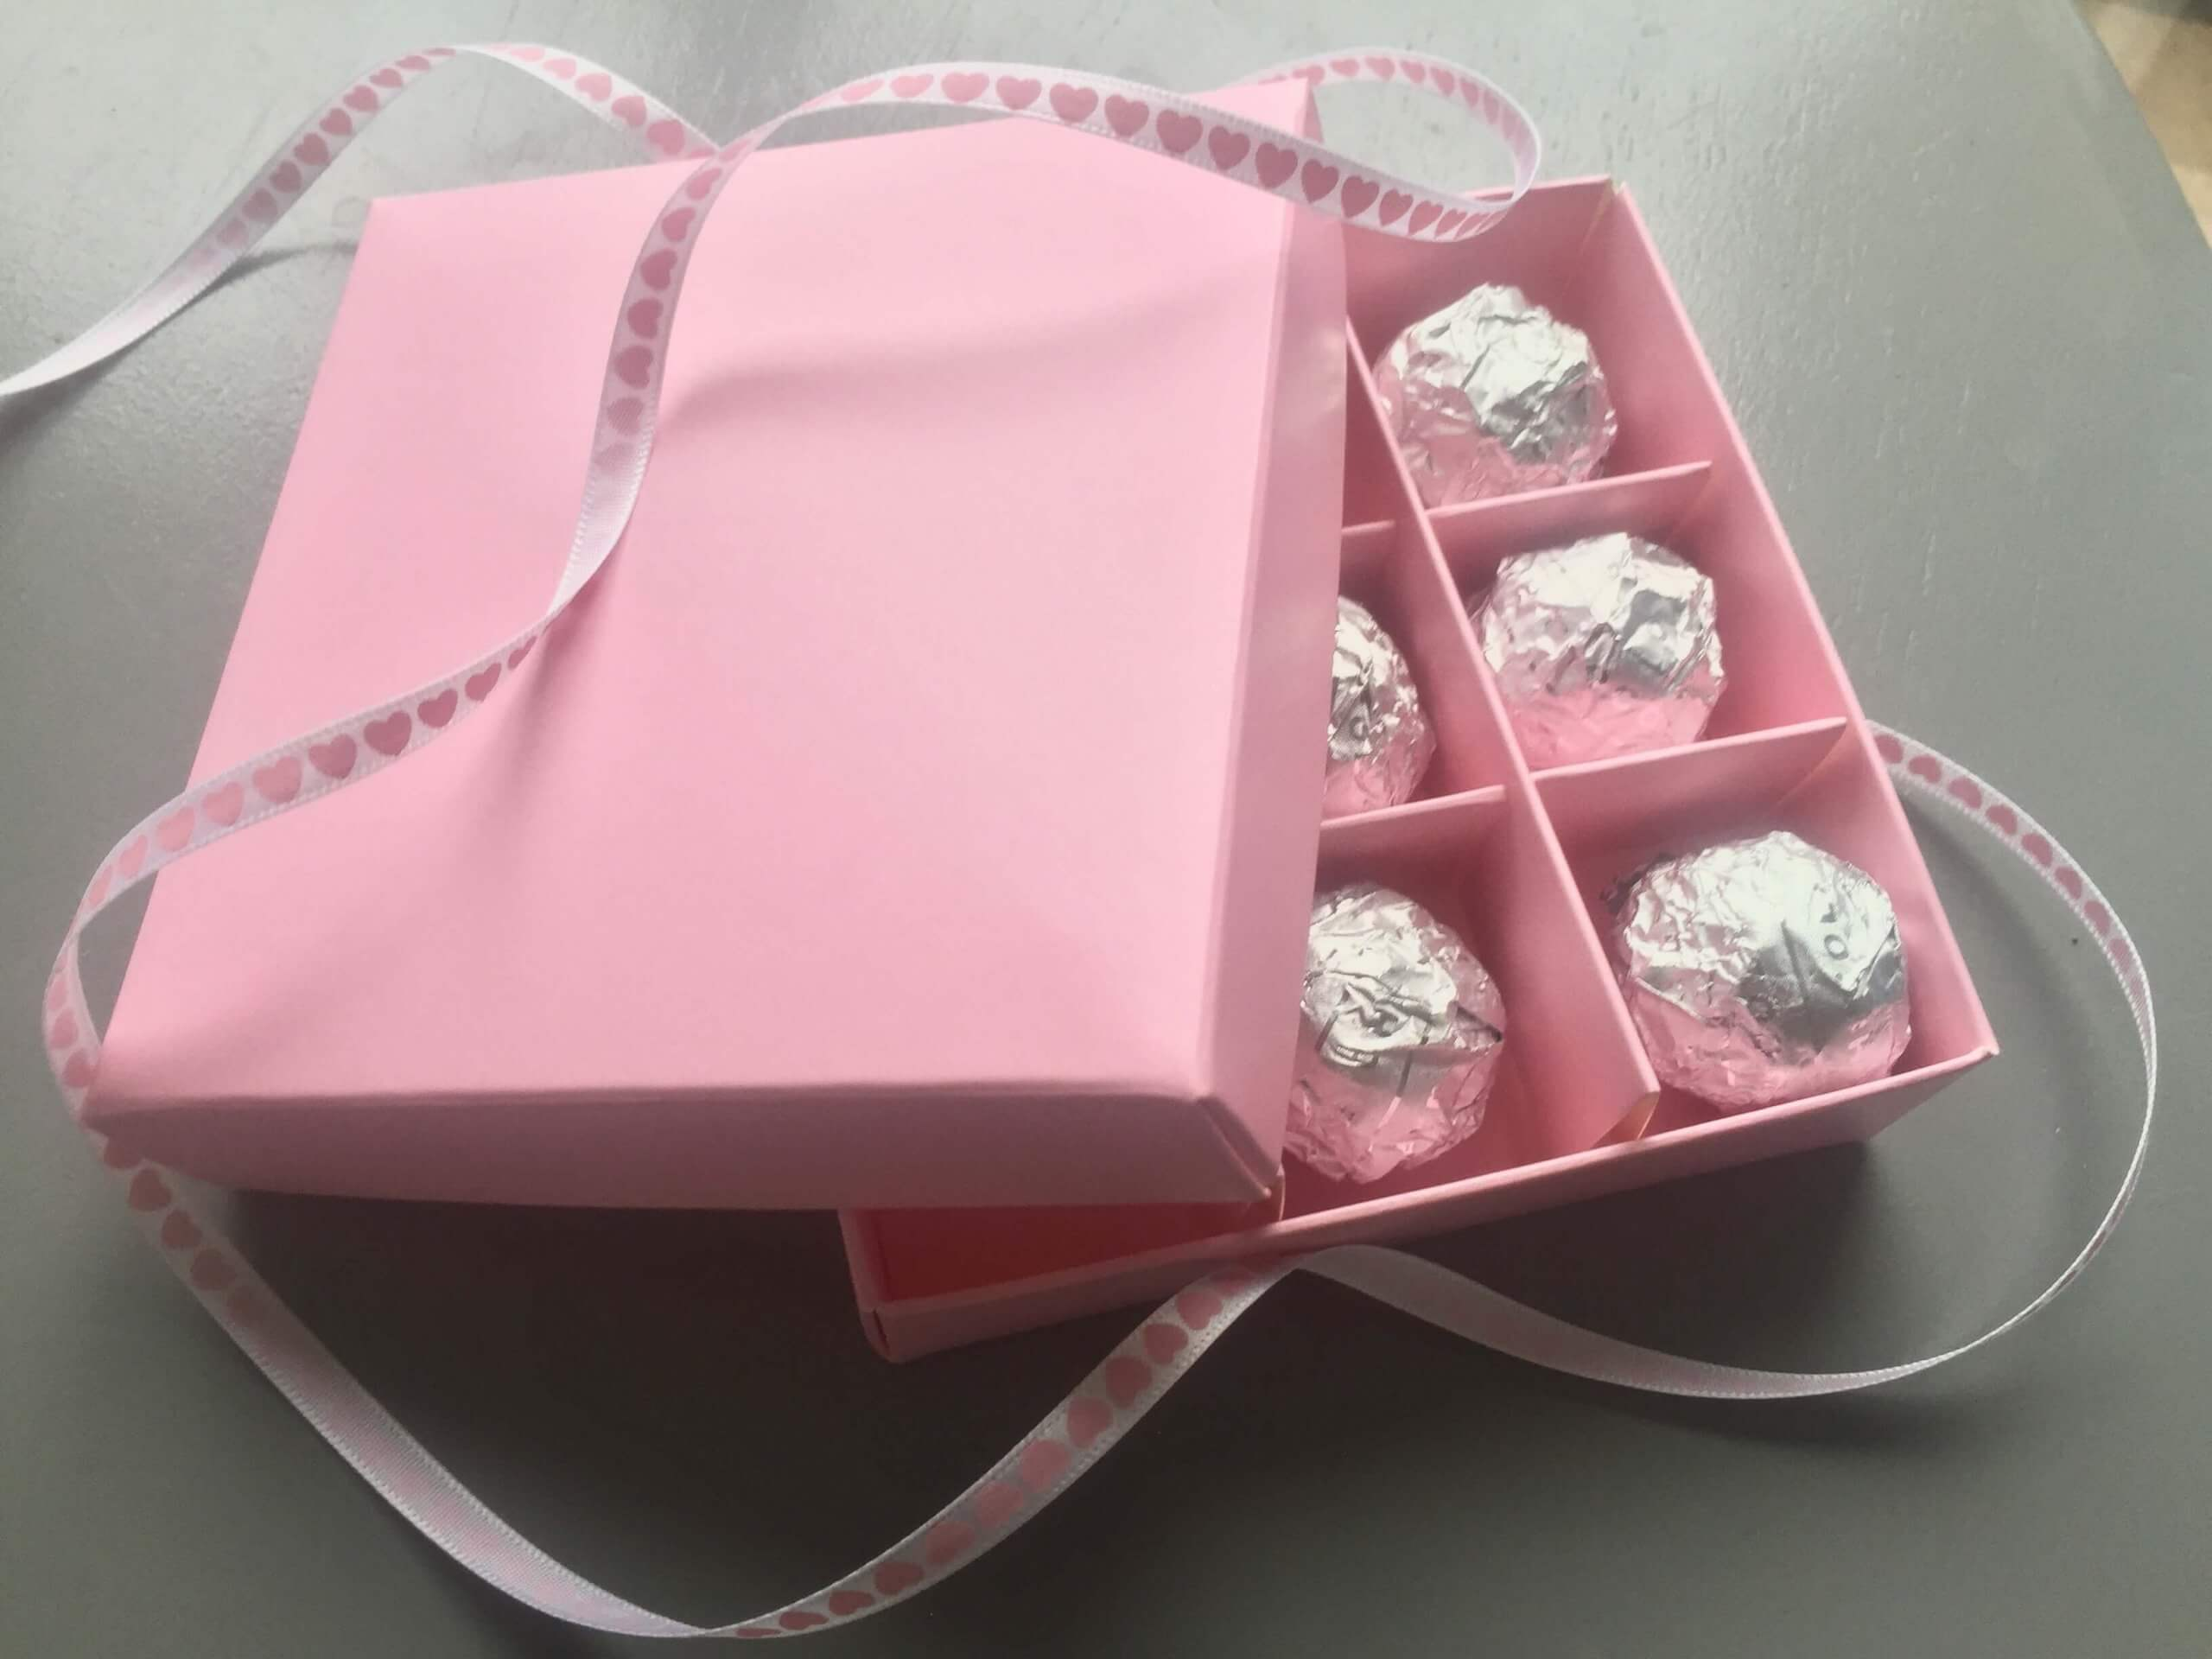 9 Pack Confectionary / Wax Melts Box in Pink with Pink Inserts